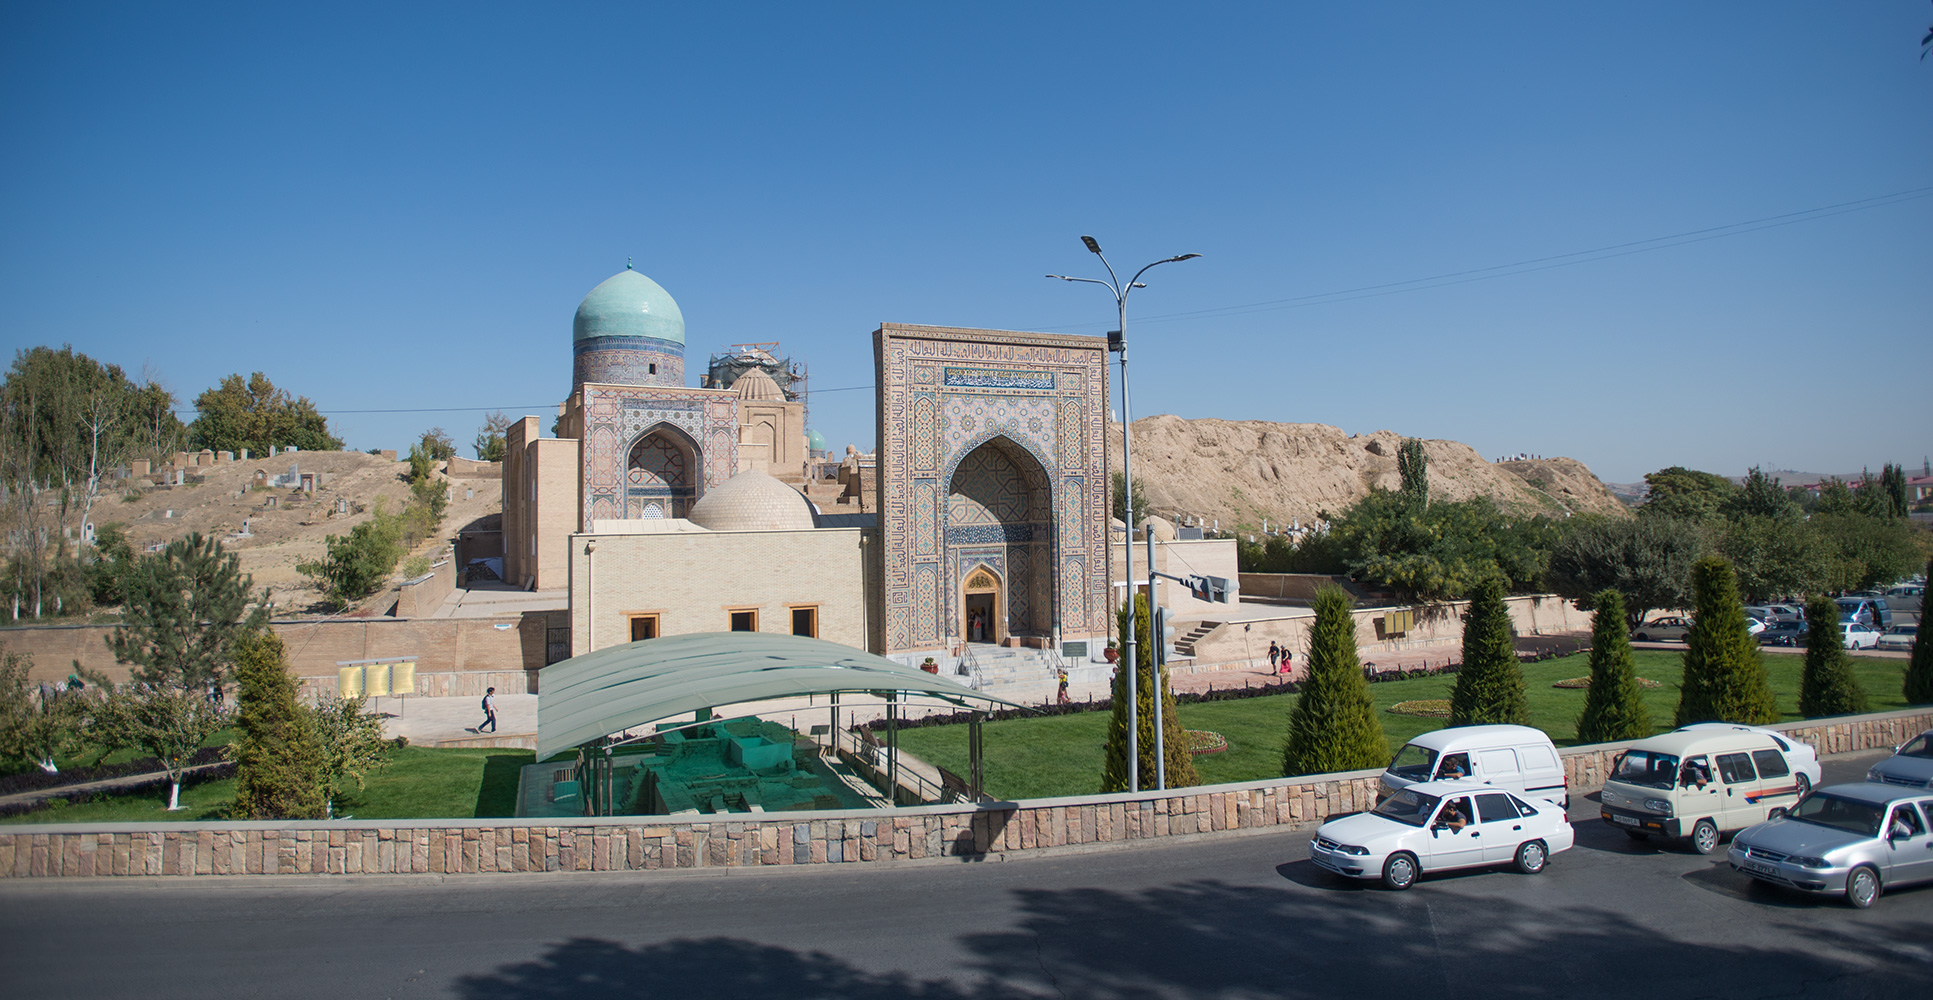 The complex from across the street in September 2018.Shah-i-Zinda means The Living King, and this is the holiest of all the archaeological sites in Samarkand. It is a vast necropolis of mausoleums dating from the 7th Century, but it is the structures dating from the 14th and 15th Centuries that really impress. Here, the ceramic artists of Emir Timur's time celebrated their craft, making it the most visually and atmospherically incredible place in the city.